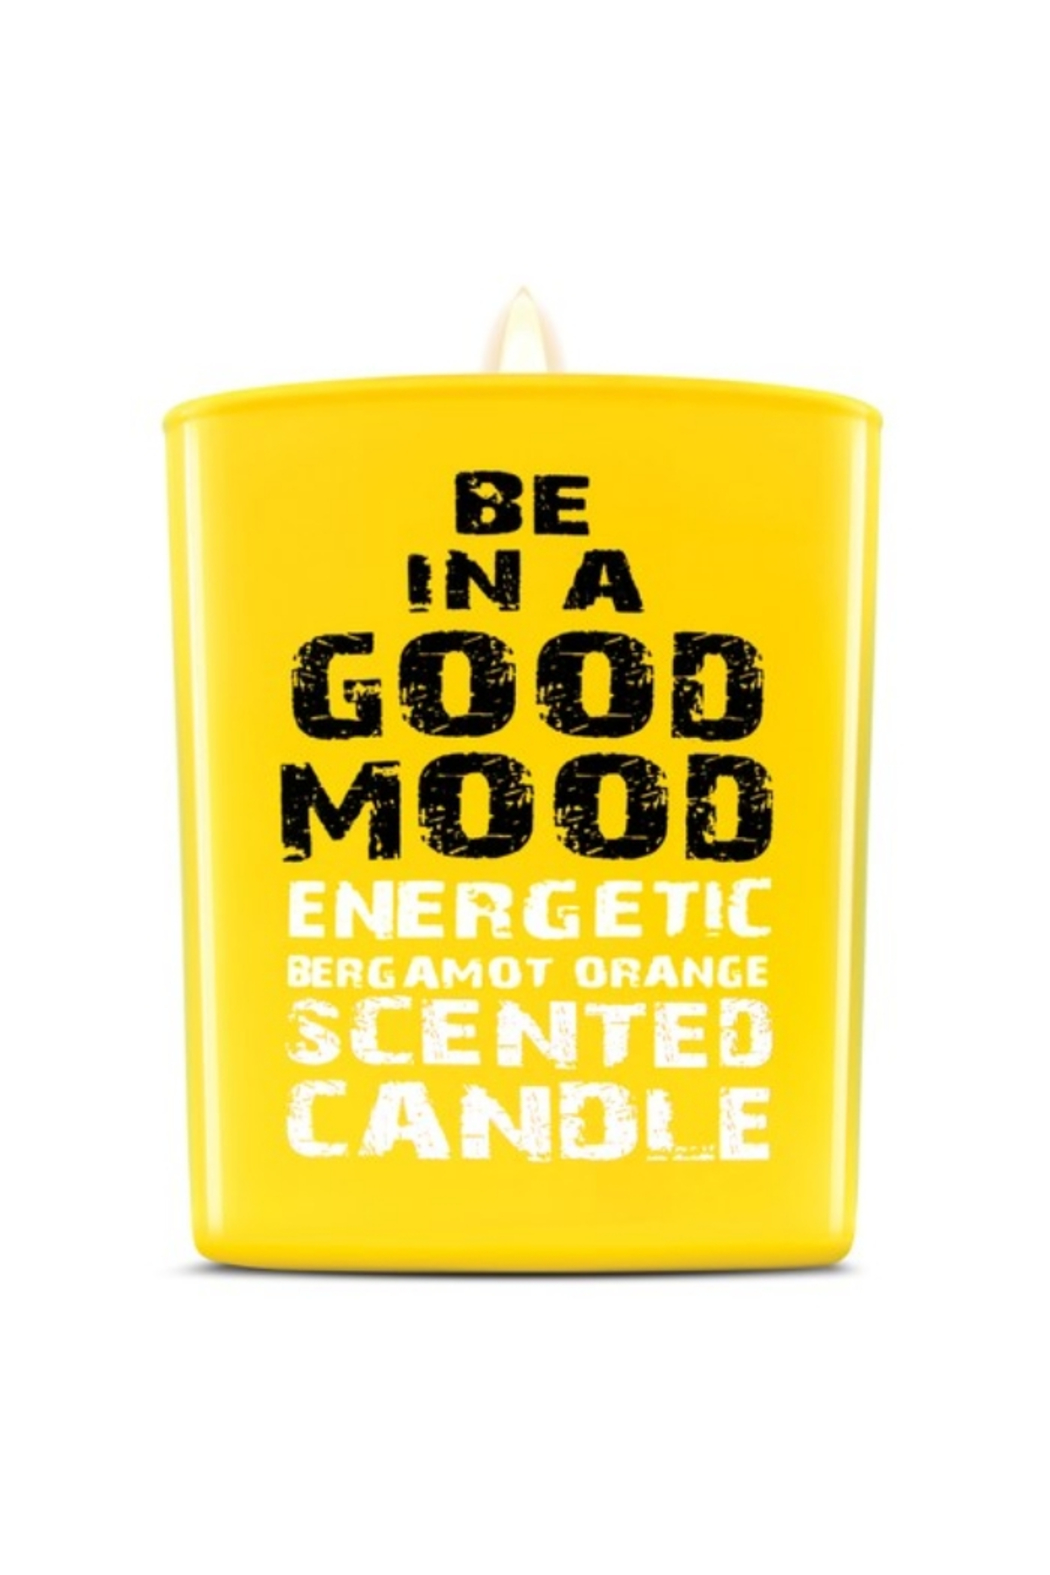 be in a good mood BE IN A GOOD MOOD Energetic Bergamot Orange Scented Candle - Main Image